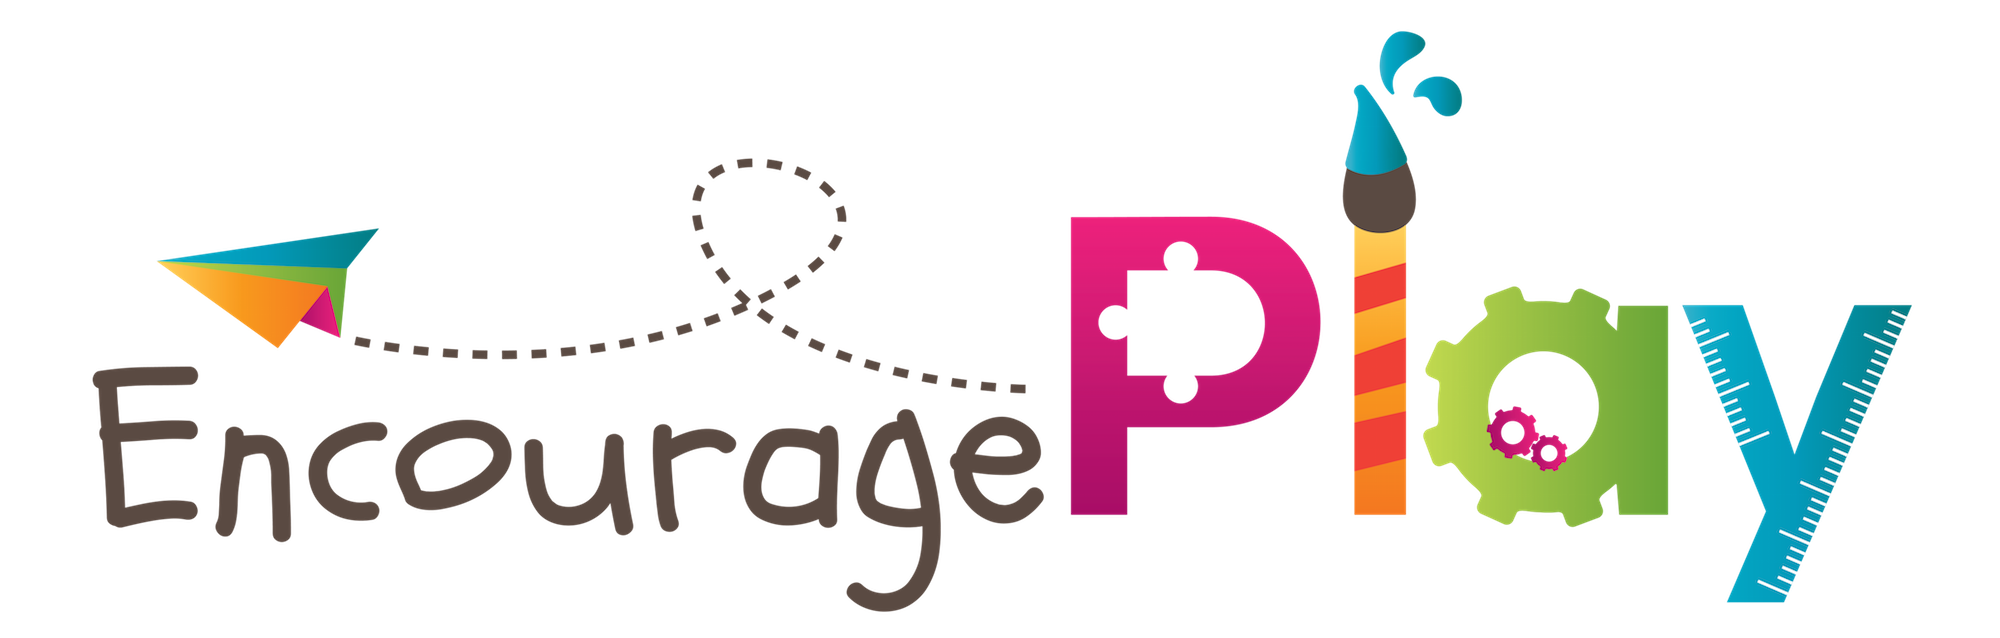 EncouragePlay_Logo1 small version.png